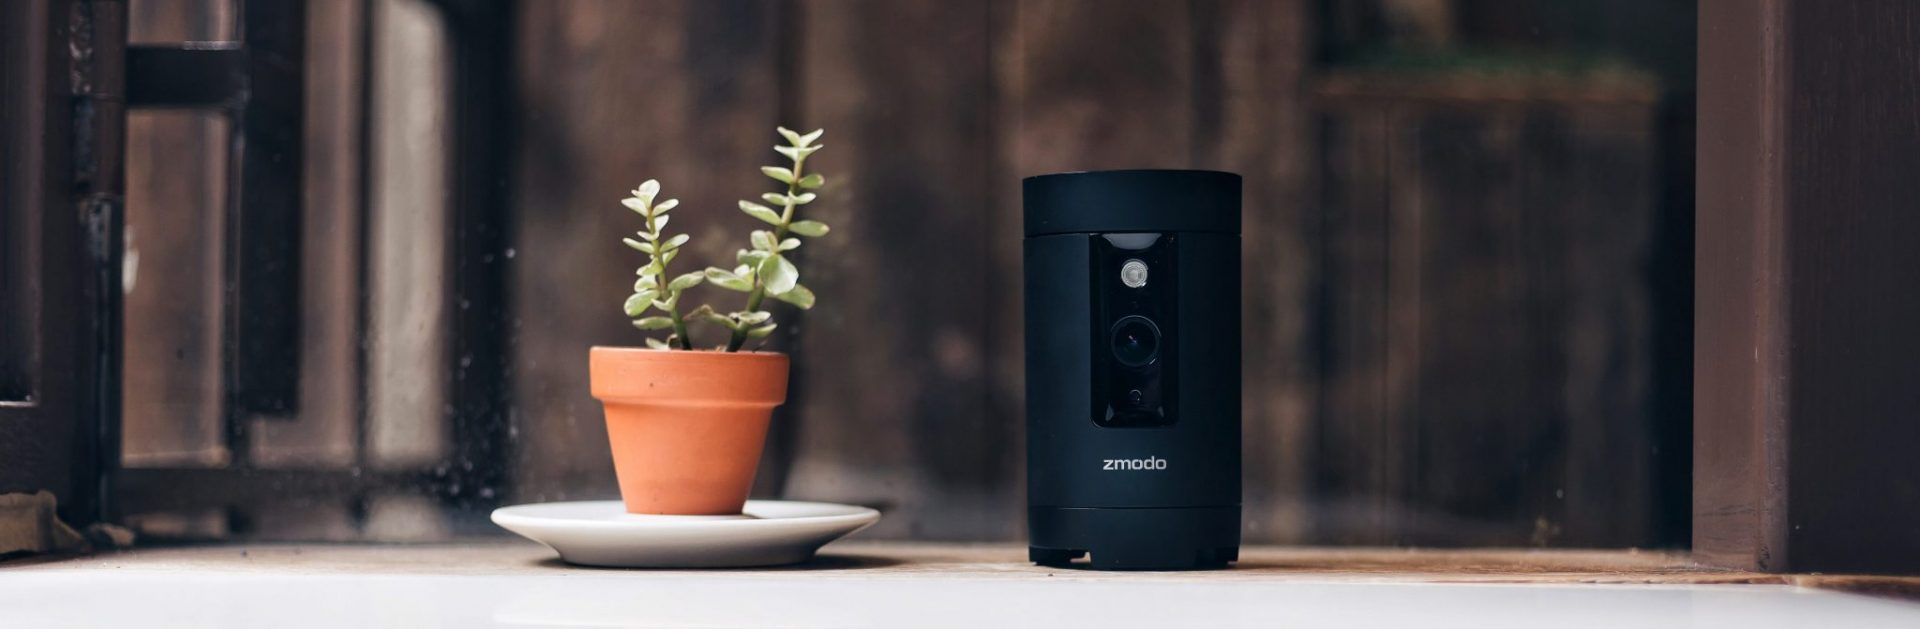 2016 Hands on Review of Zmodo Pivot- Lifestyle Image